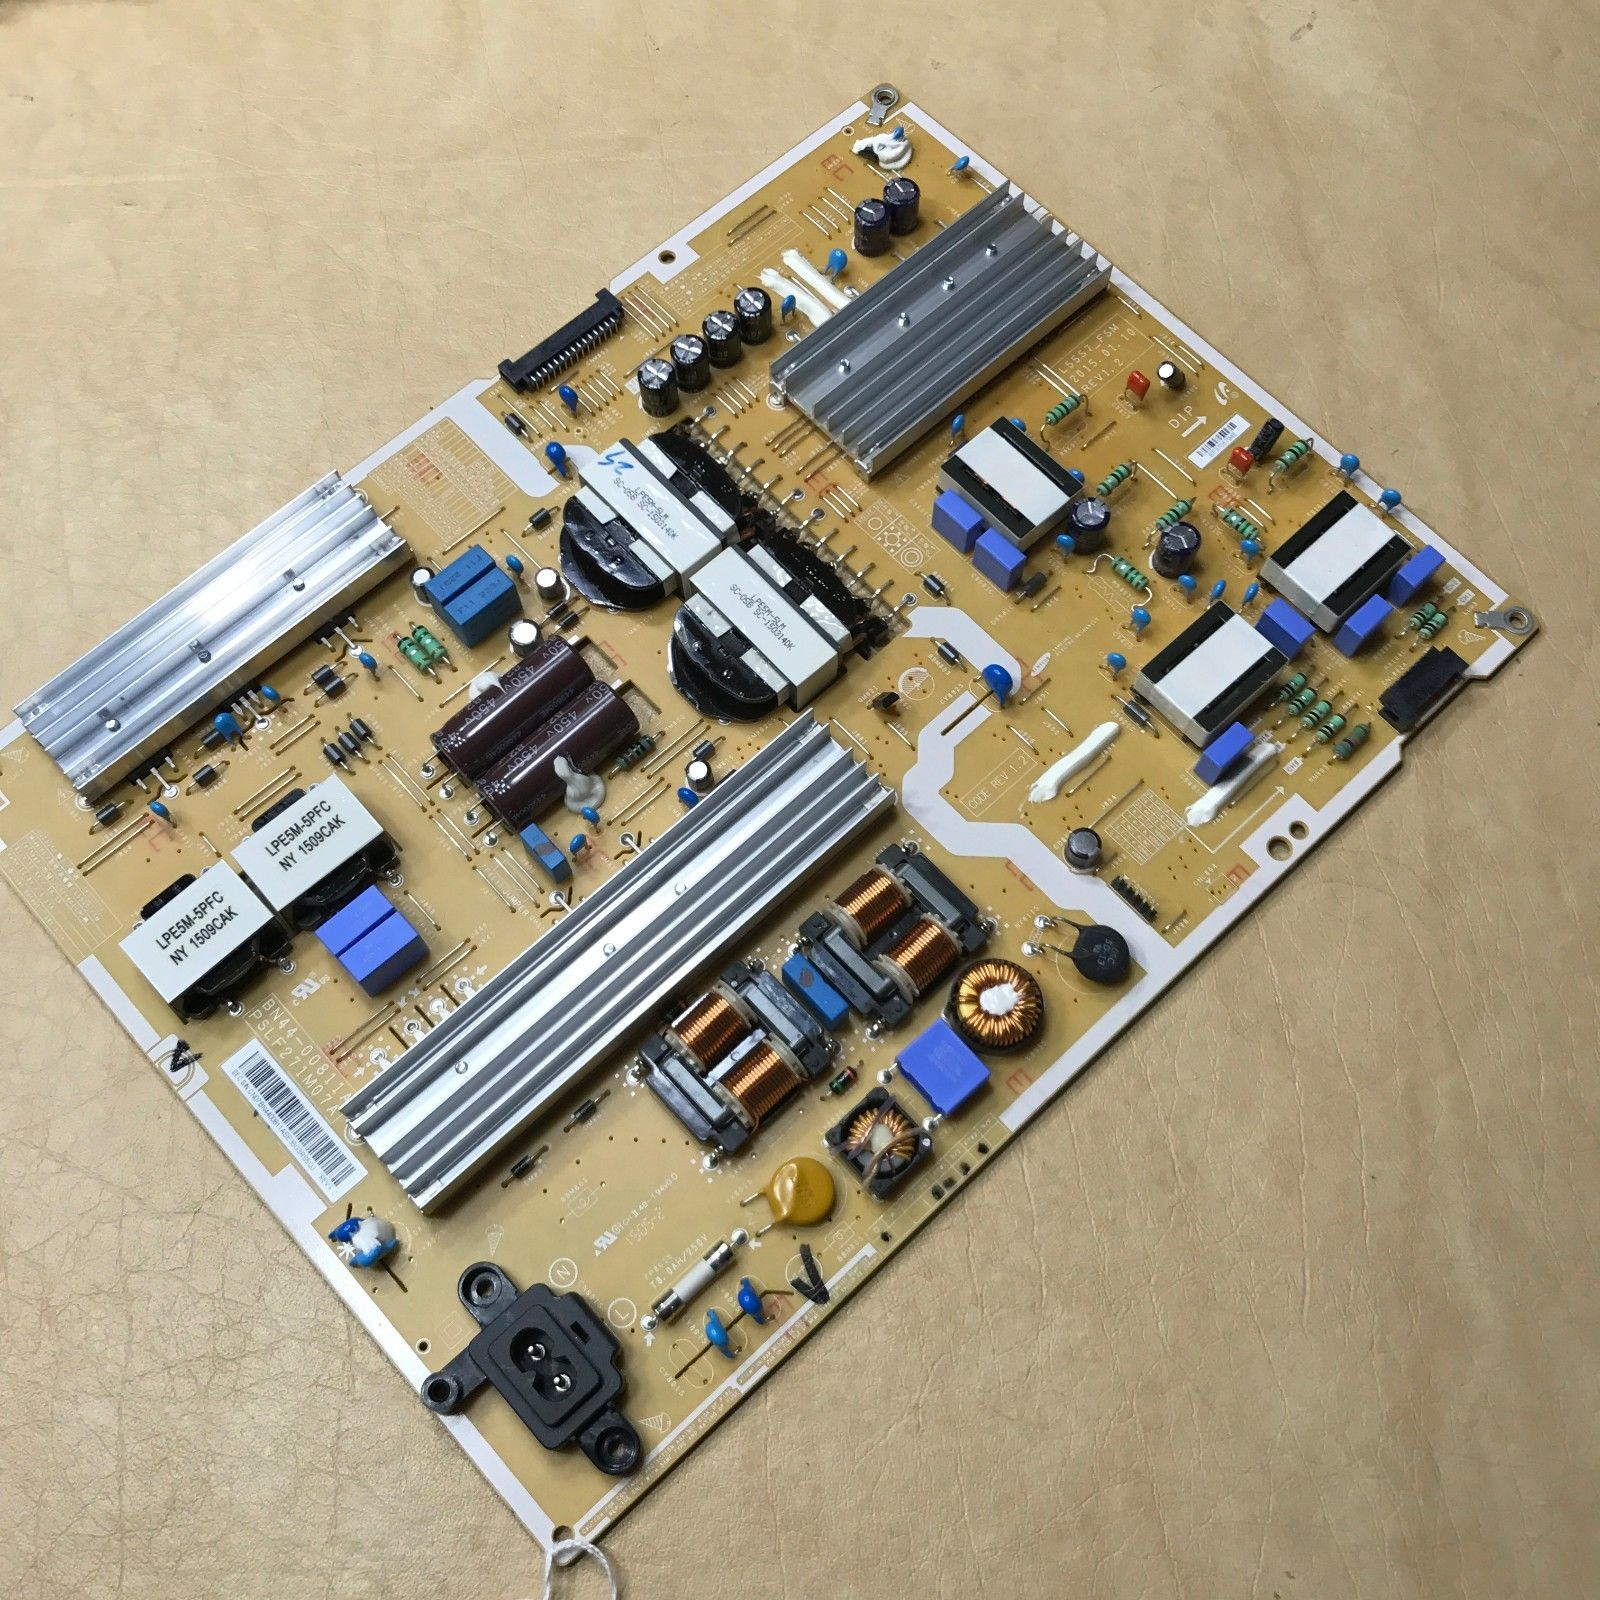 SAMSUNG BN44-00811A POWER SUPPLY BOARD FOR UN50JU7100 AND OTHER